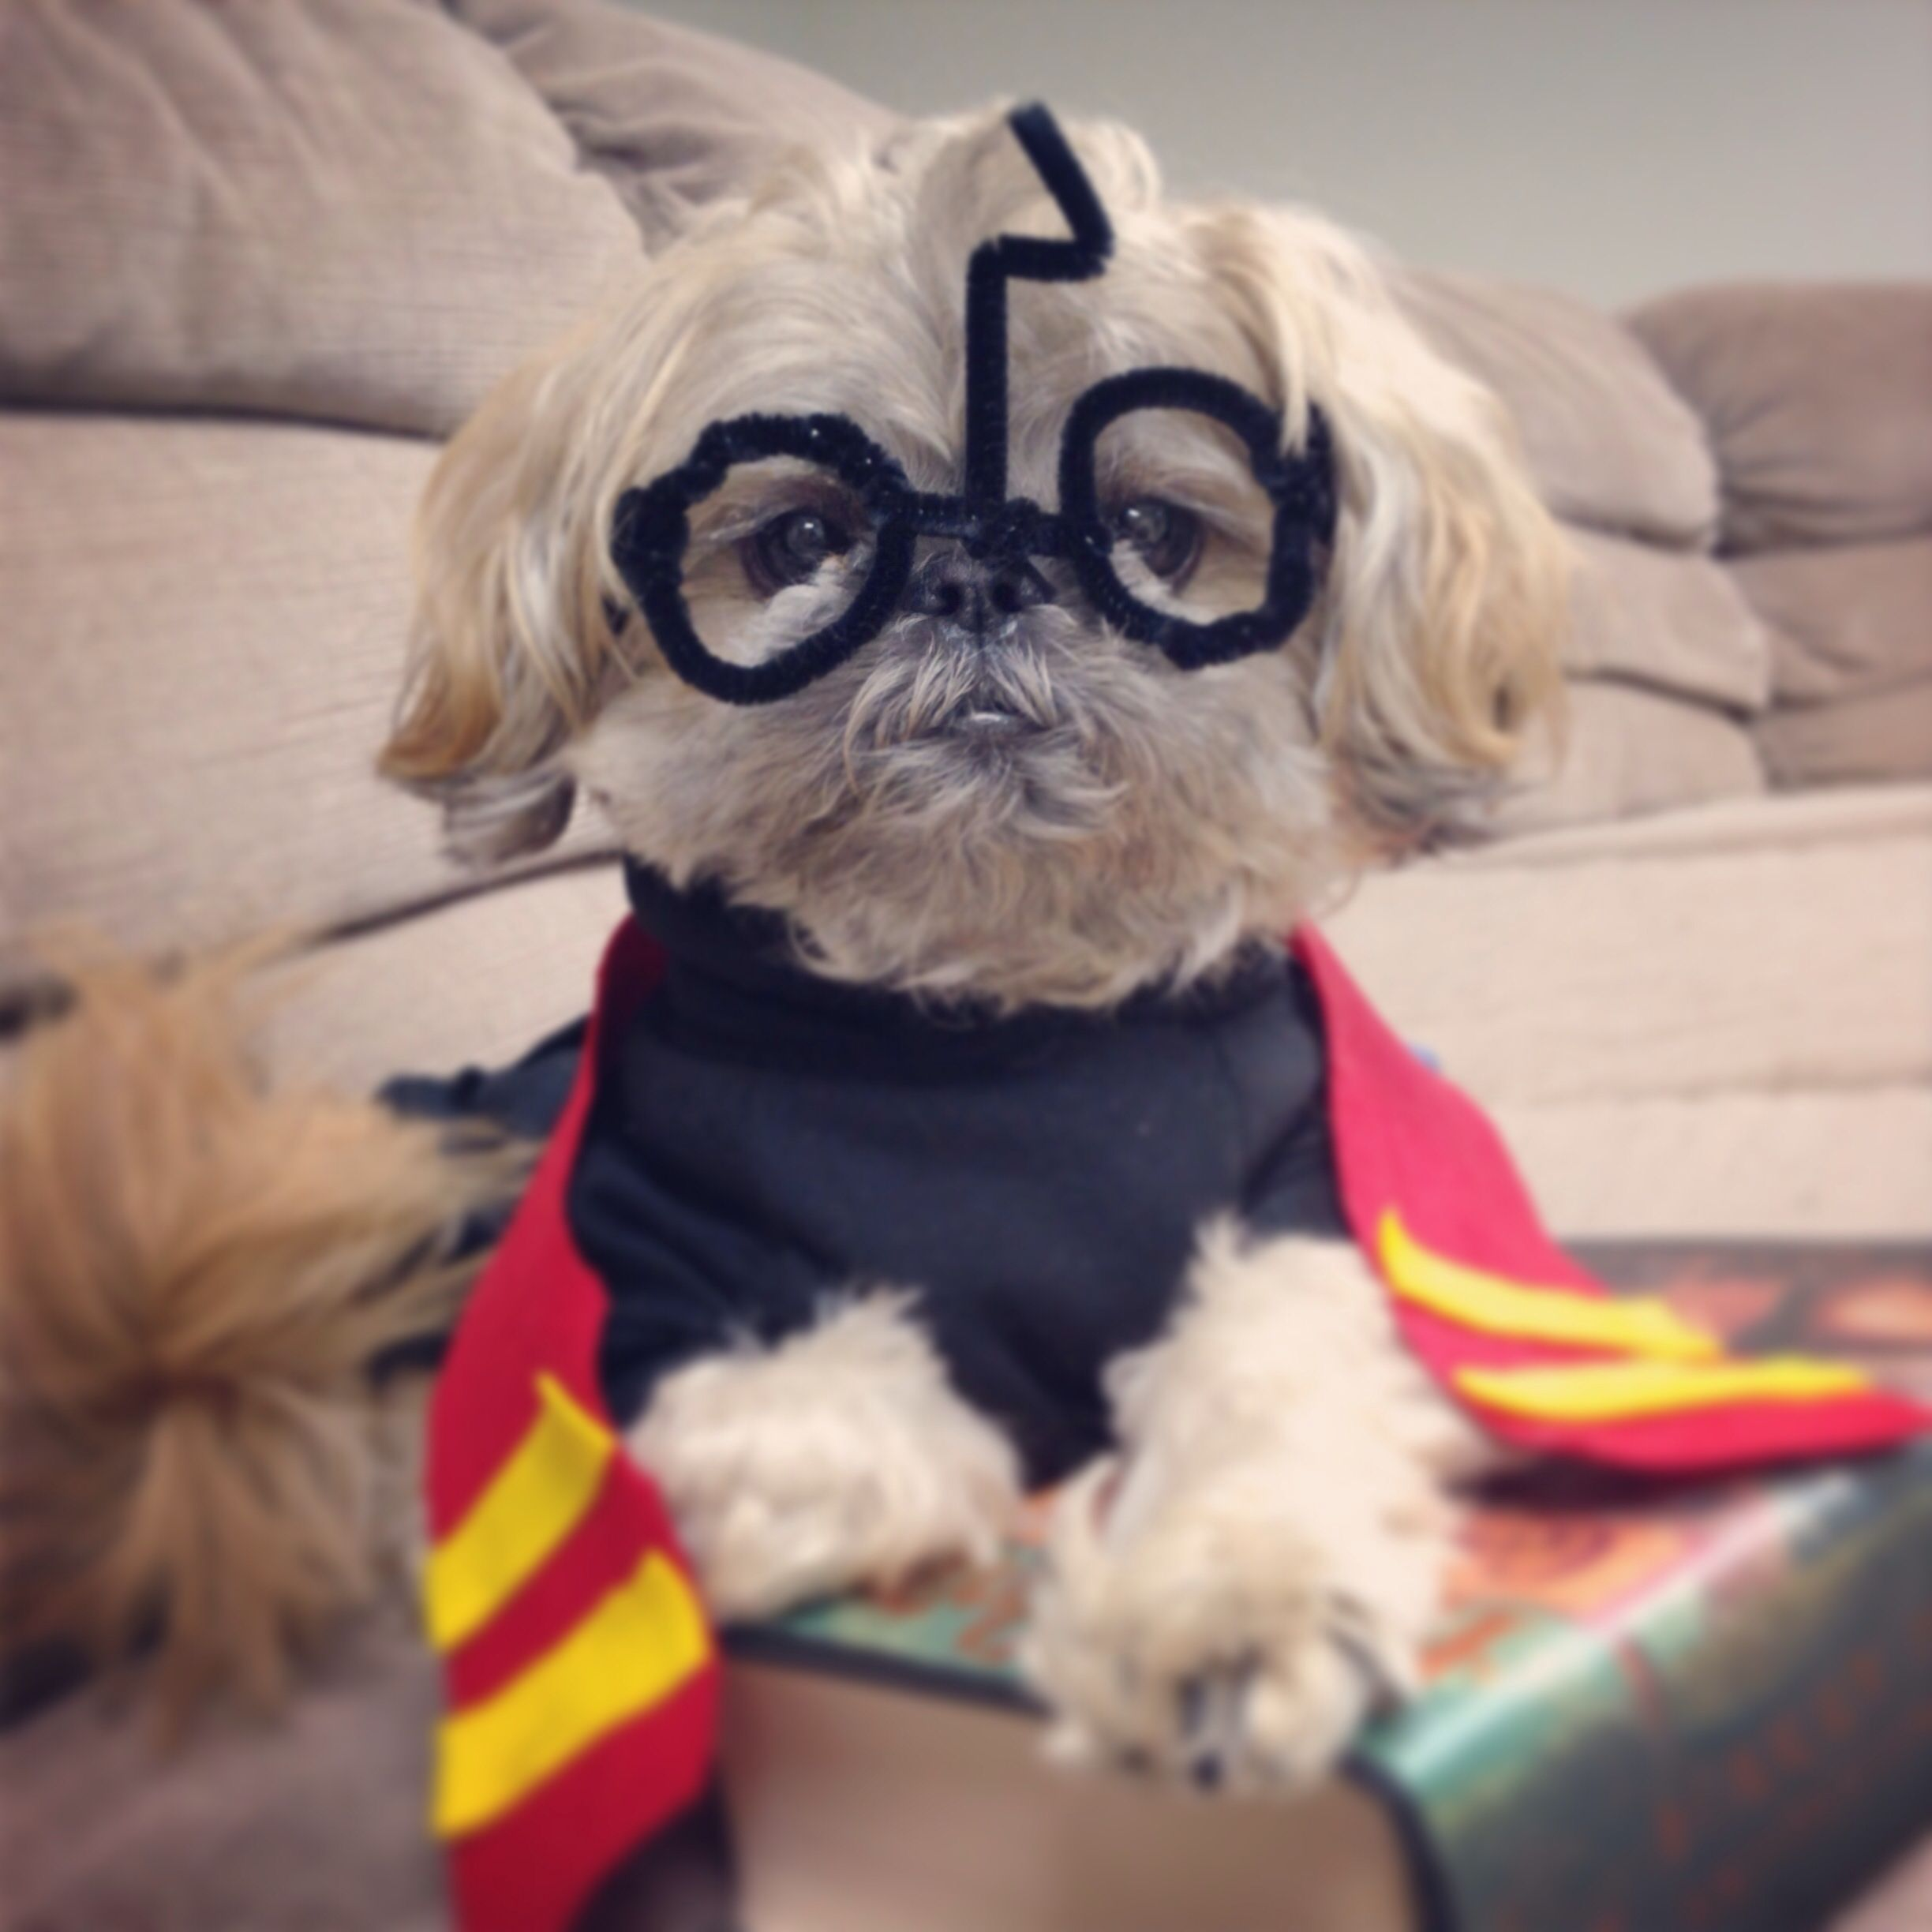 Harry Potter Shih Tzu Costume Dog Halloween Costumes Cute Funny